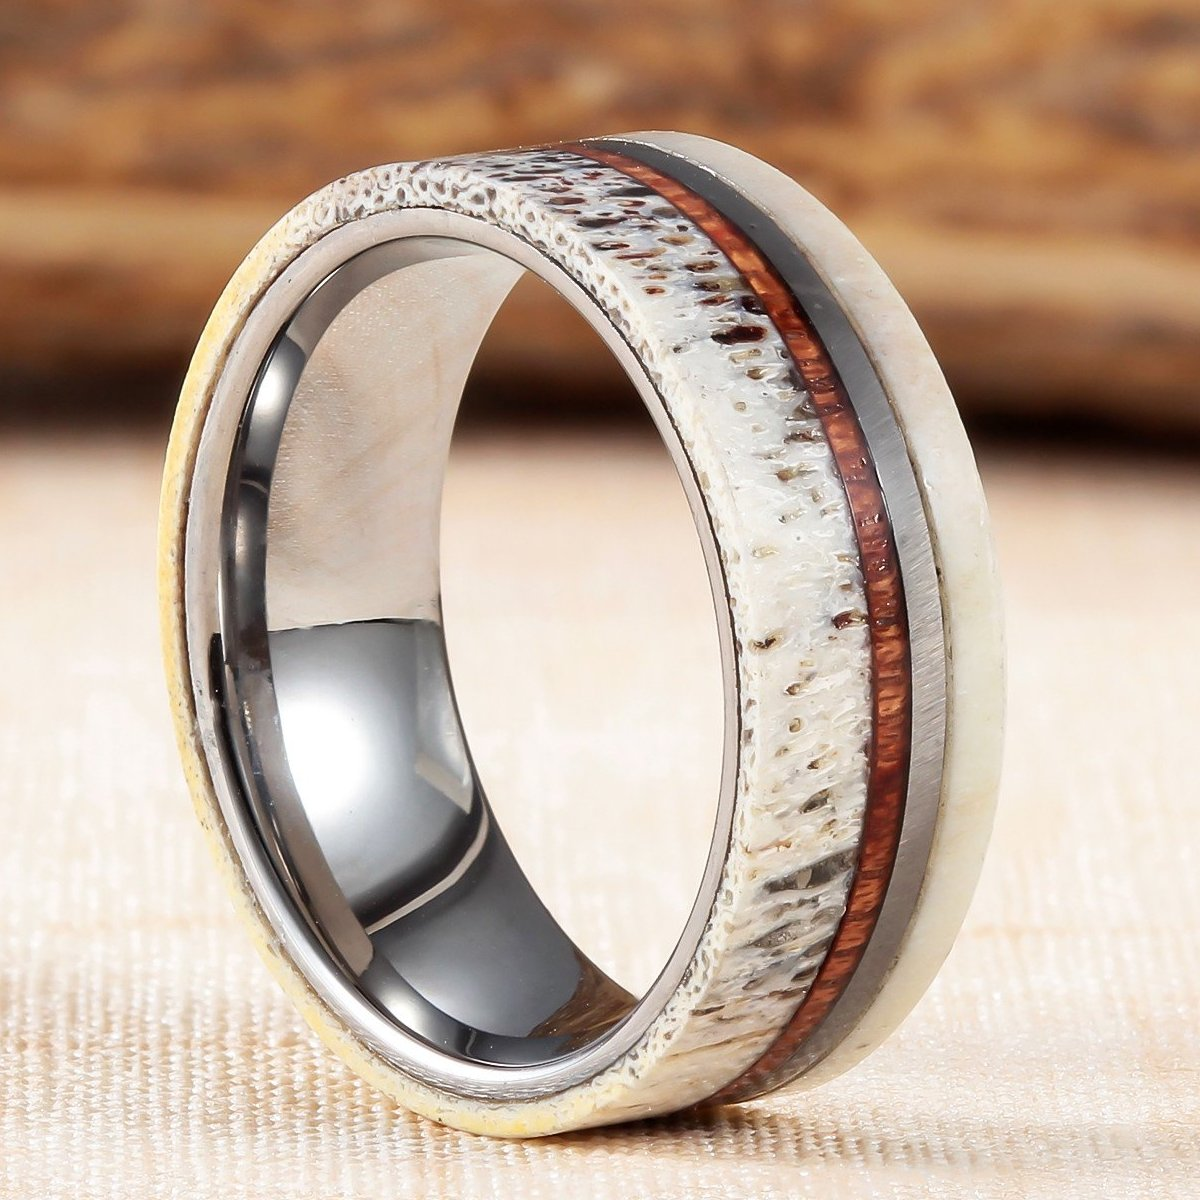 band head ring luxury com with matvuk channel designs wedding stag elk natural shed metal inspirational antler of mens rings